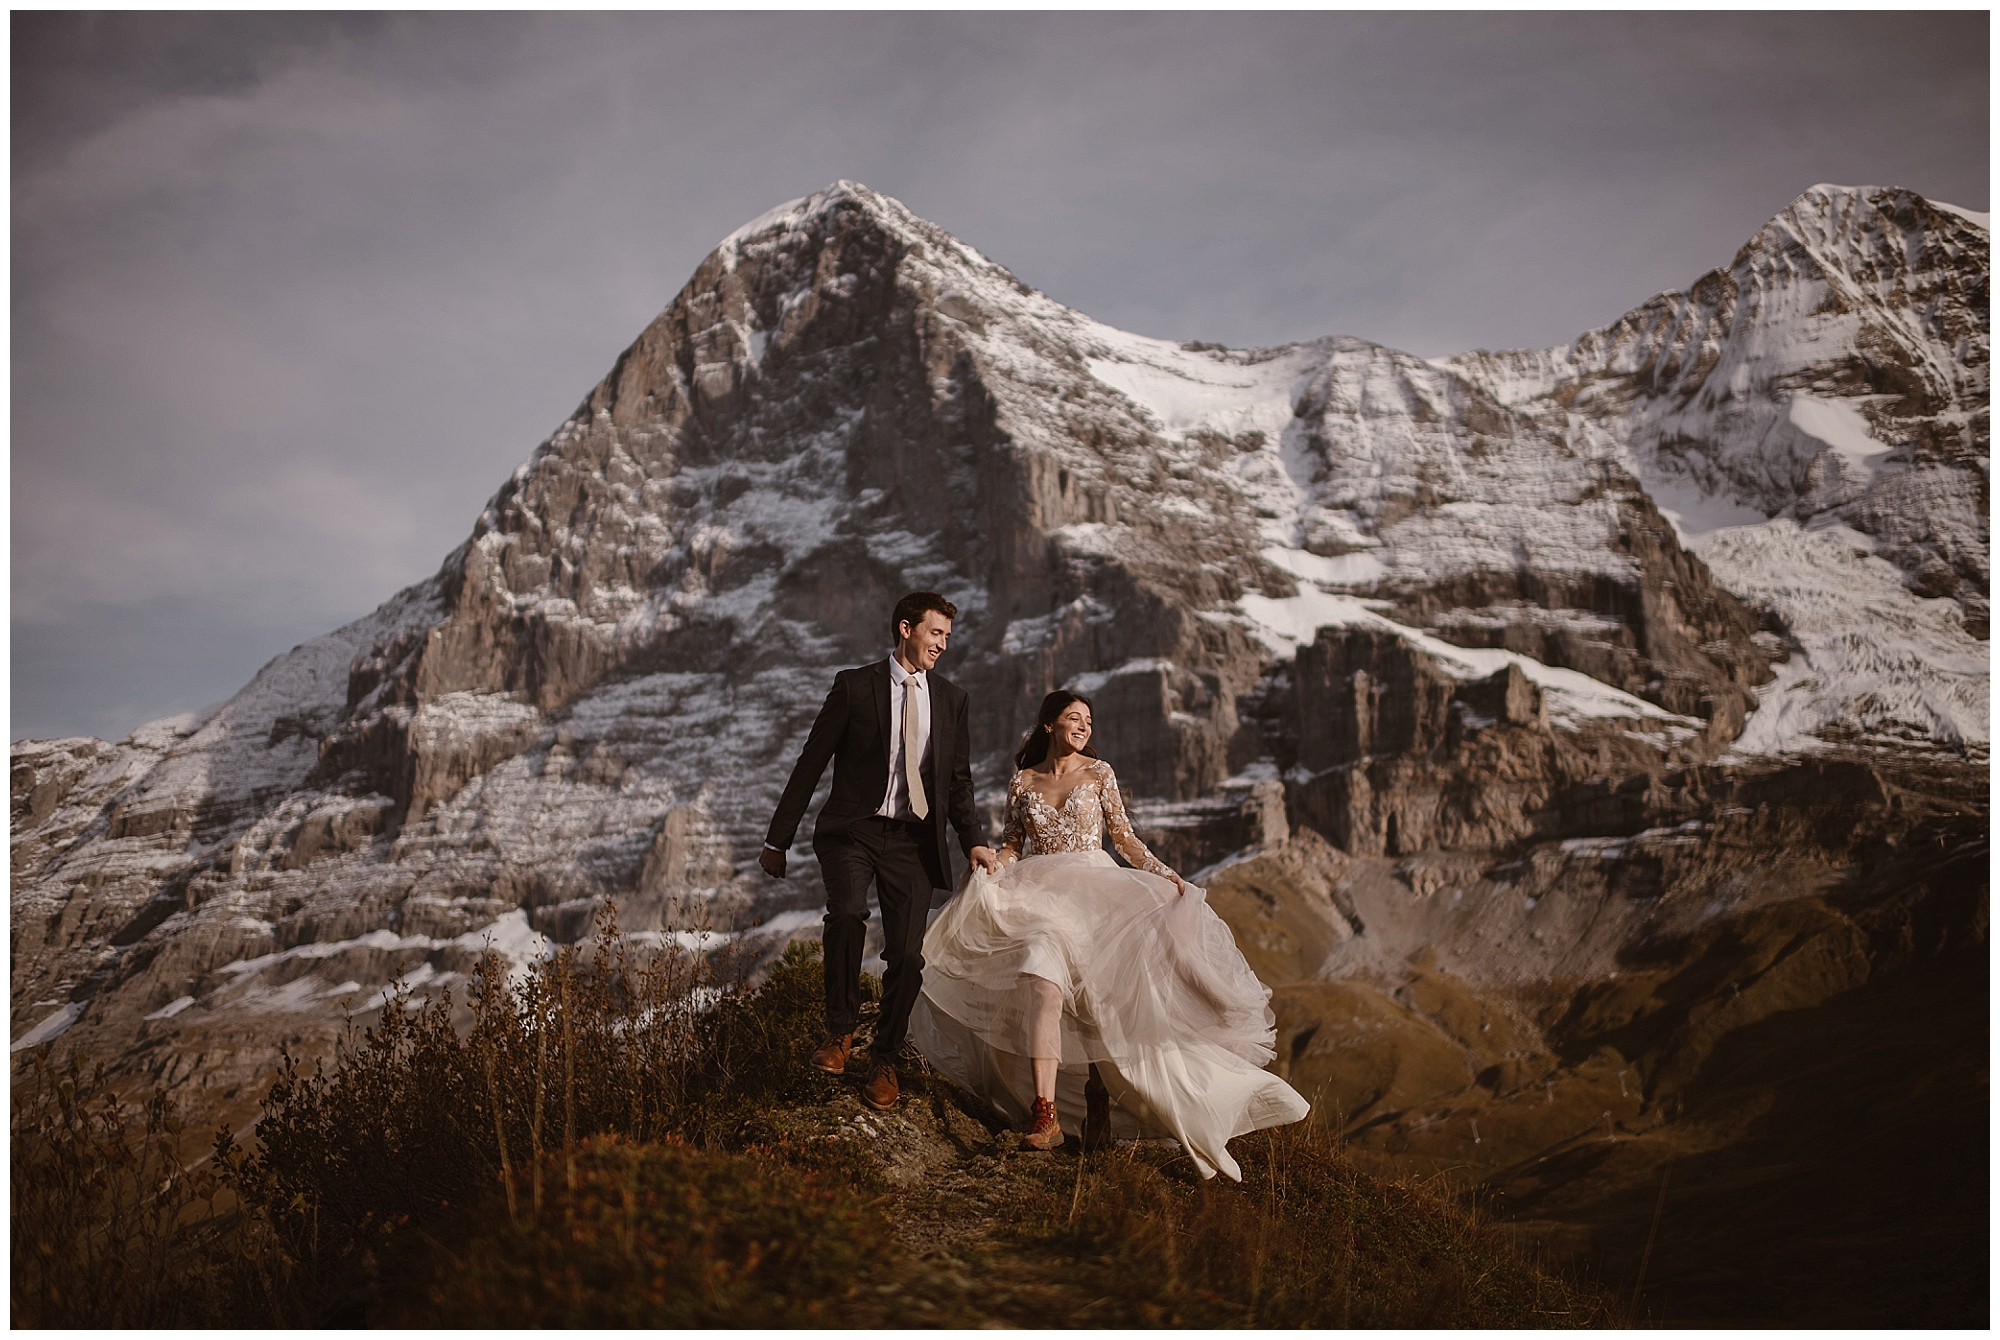 Elope on your terms! Choose the location that fits your relationship, whether it's eloping on a Swiss mountaintop or in the desert. Photo by Maddie Mae, Adventure Instead Elopement Photographers.